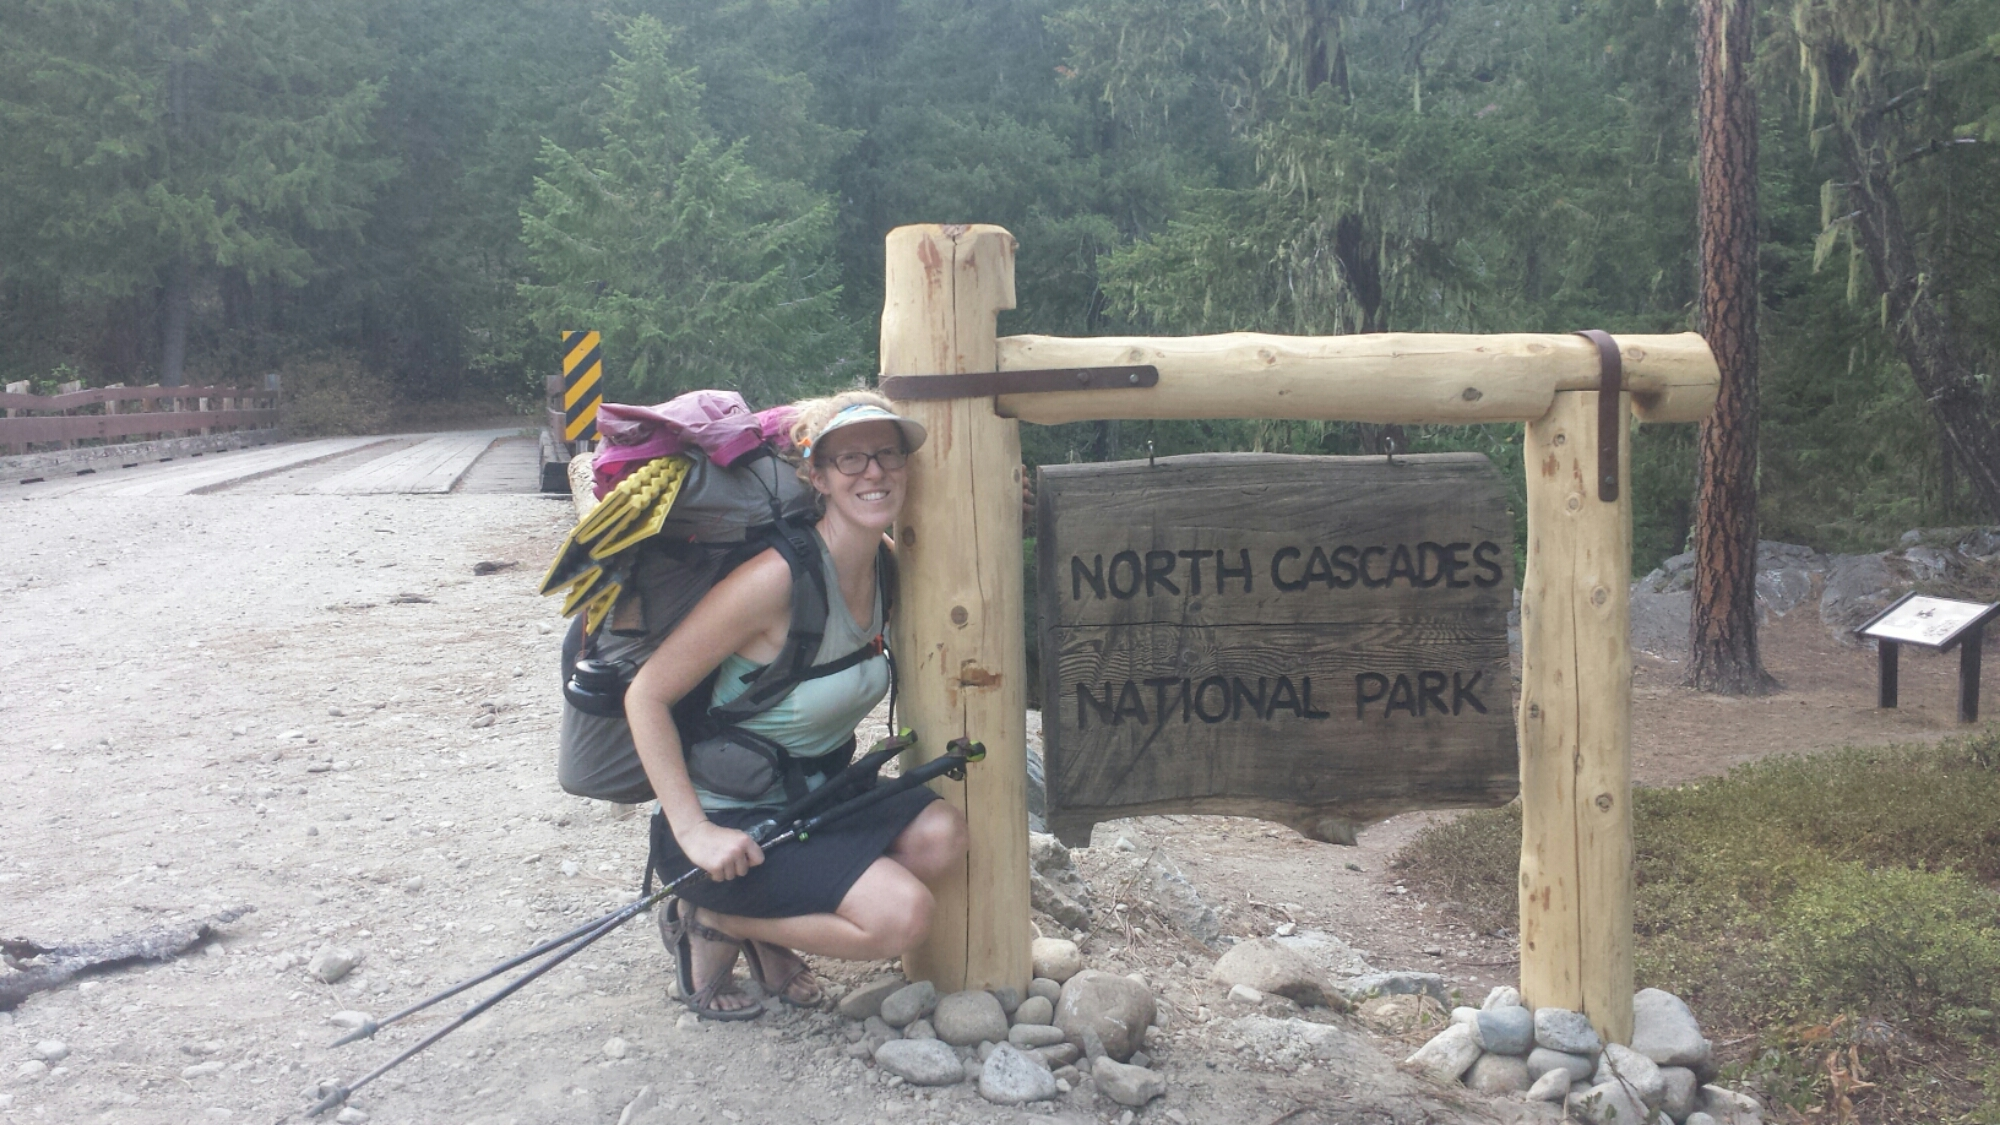 Entering North Cascades National Park